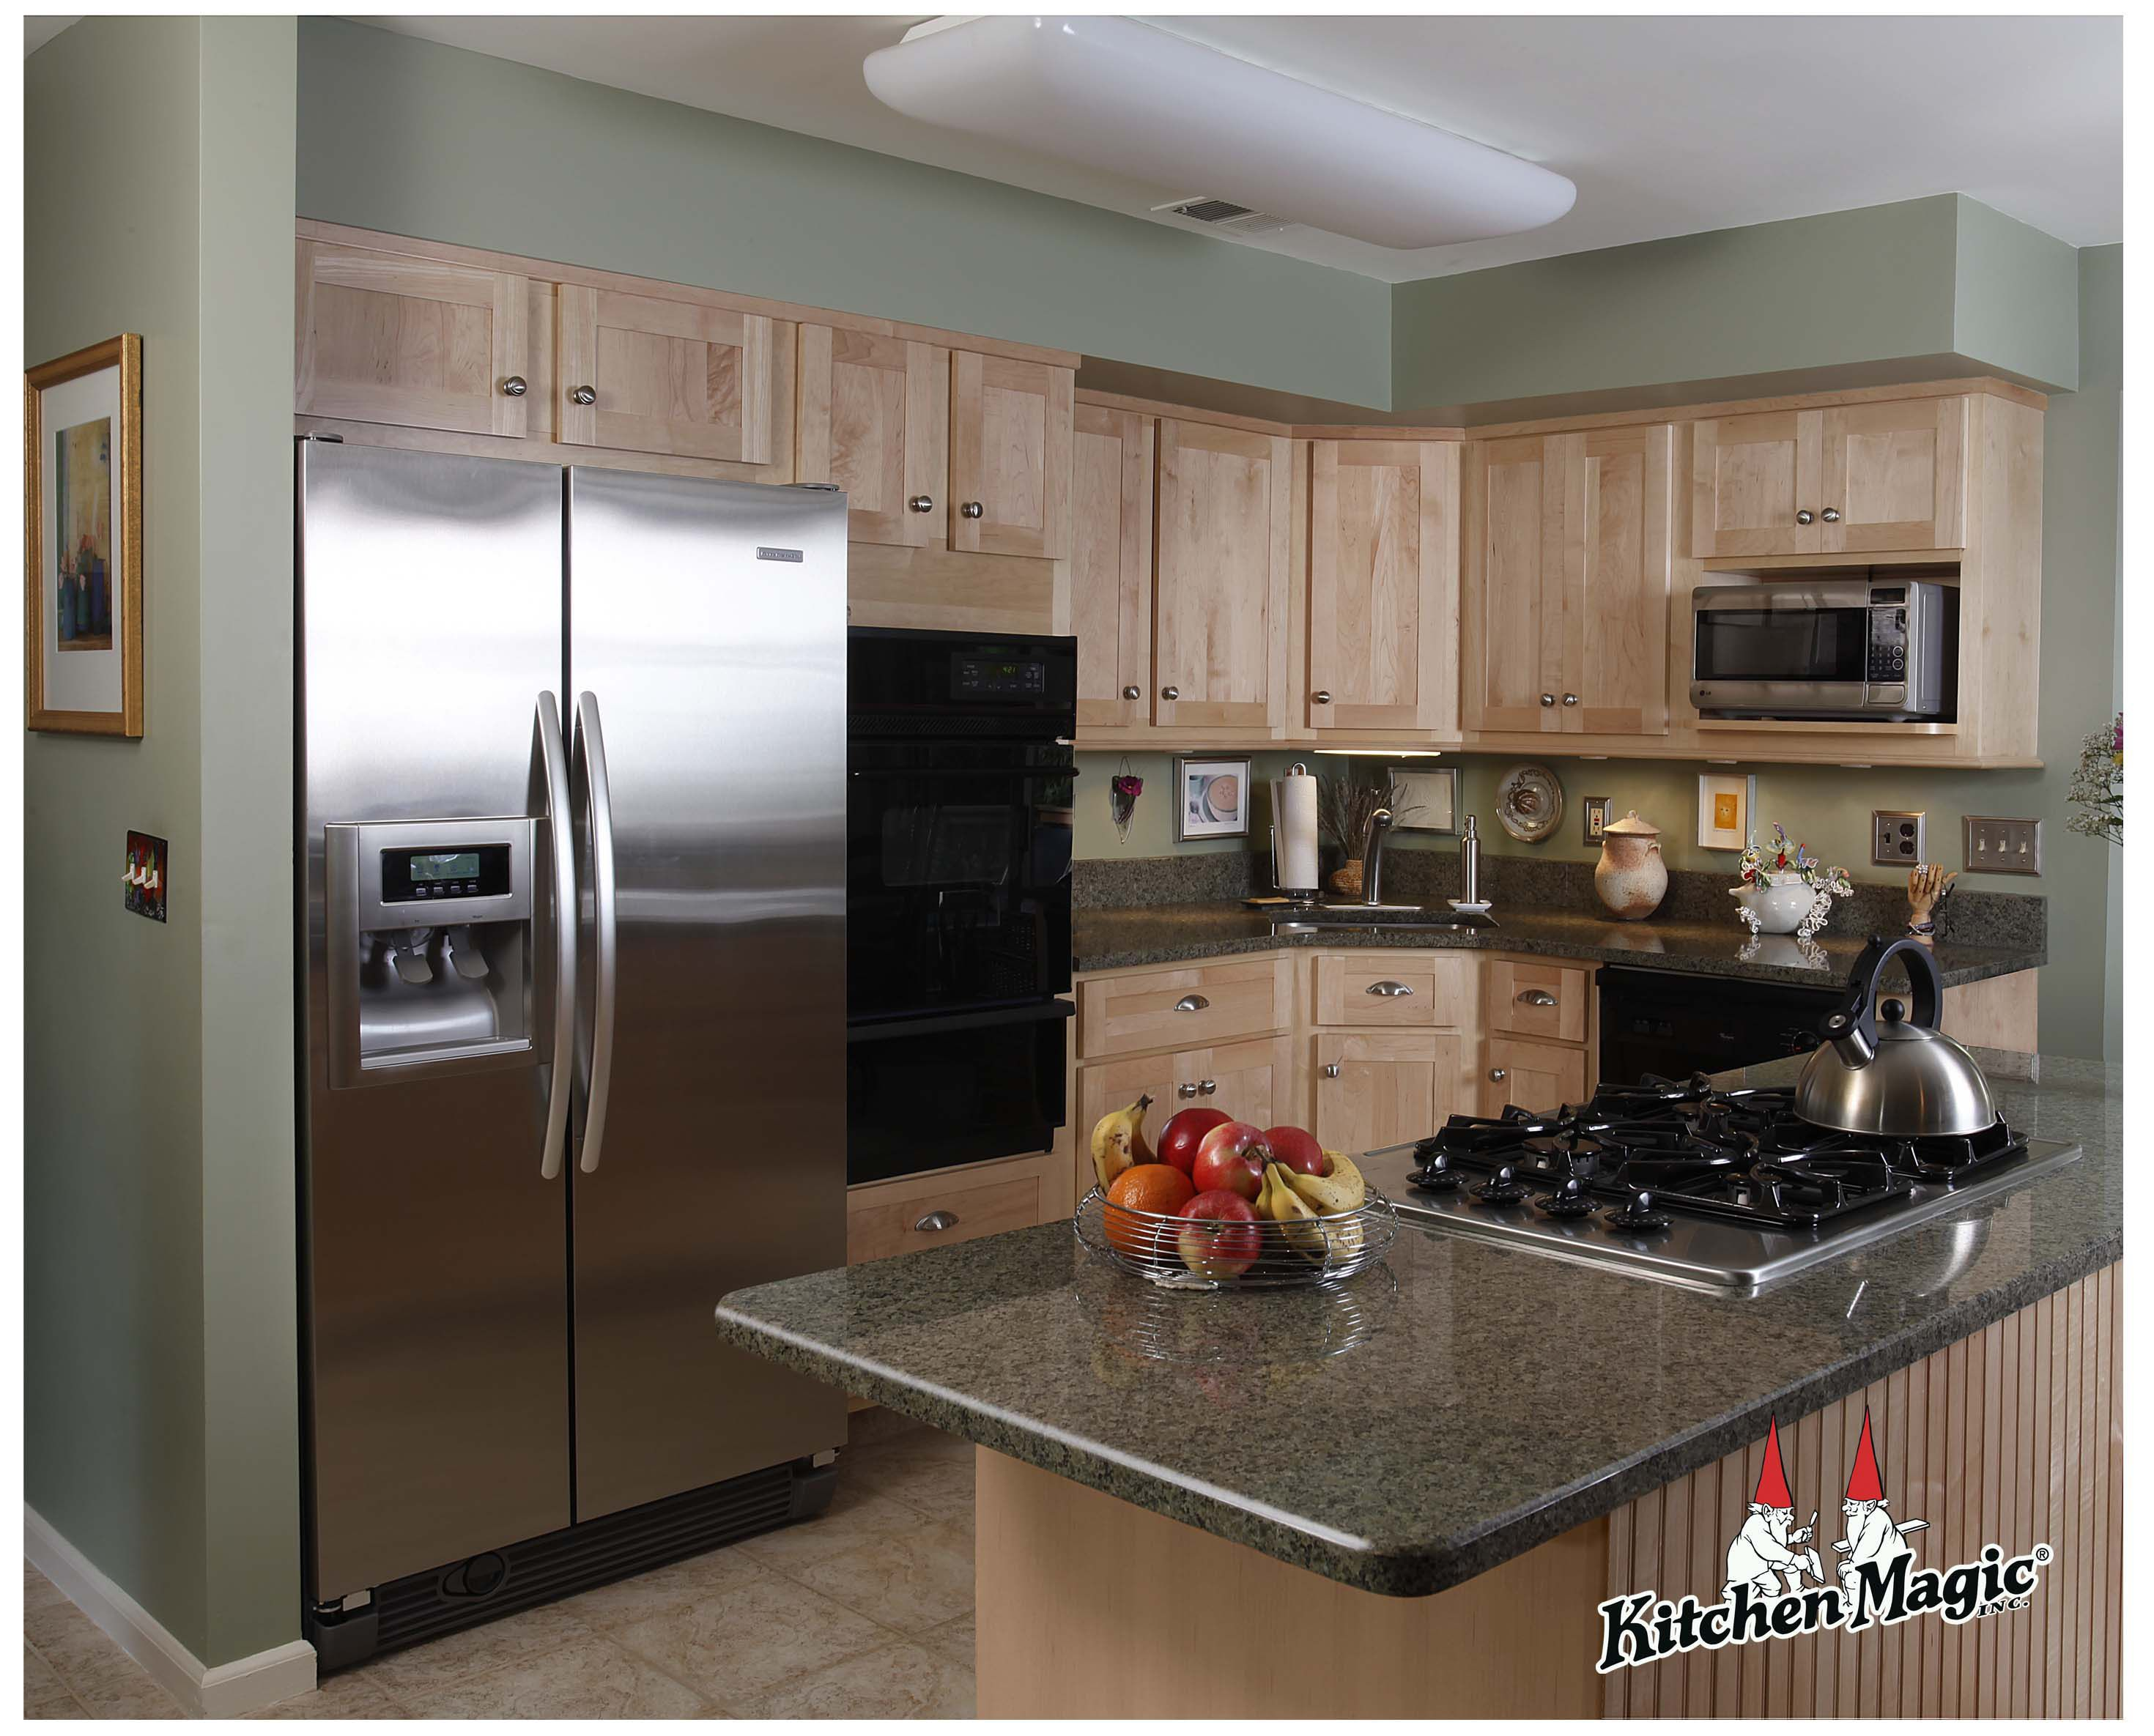 Natural Maple Wood Cabinets. Granite Countertop ... on Granite Countertops With Maple Cabinets  id=62070